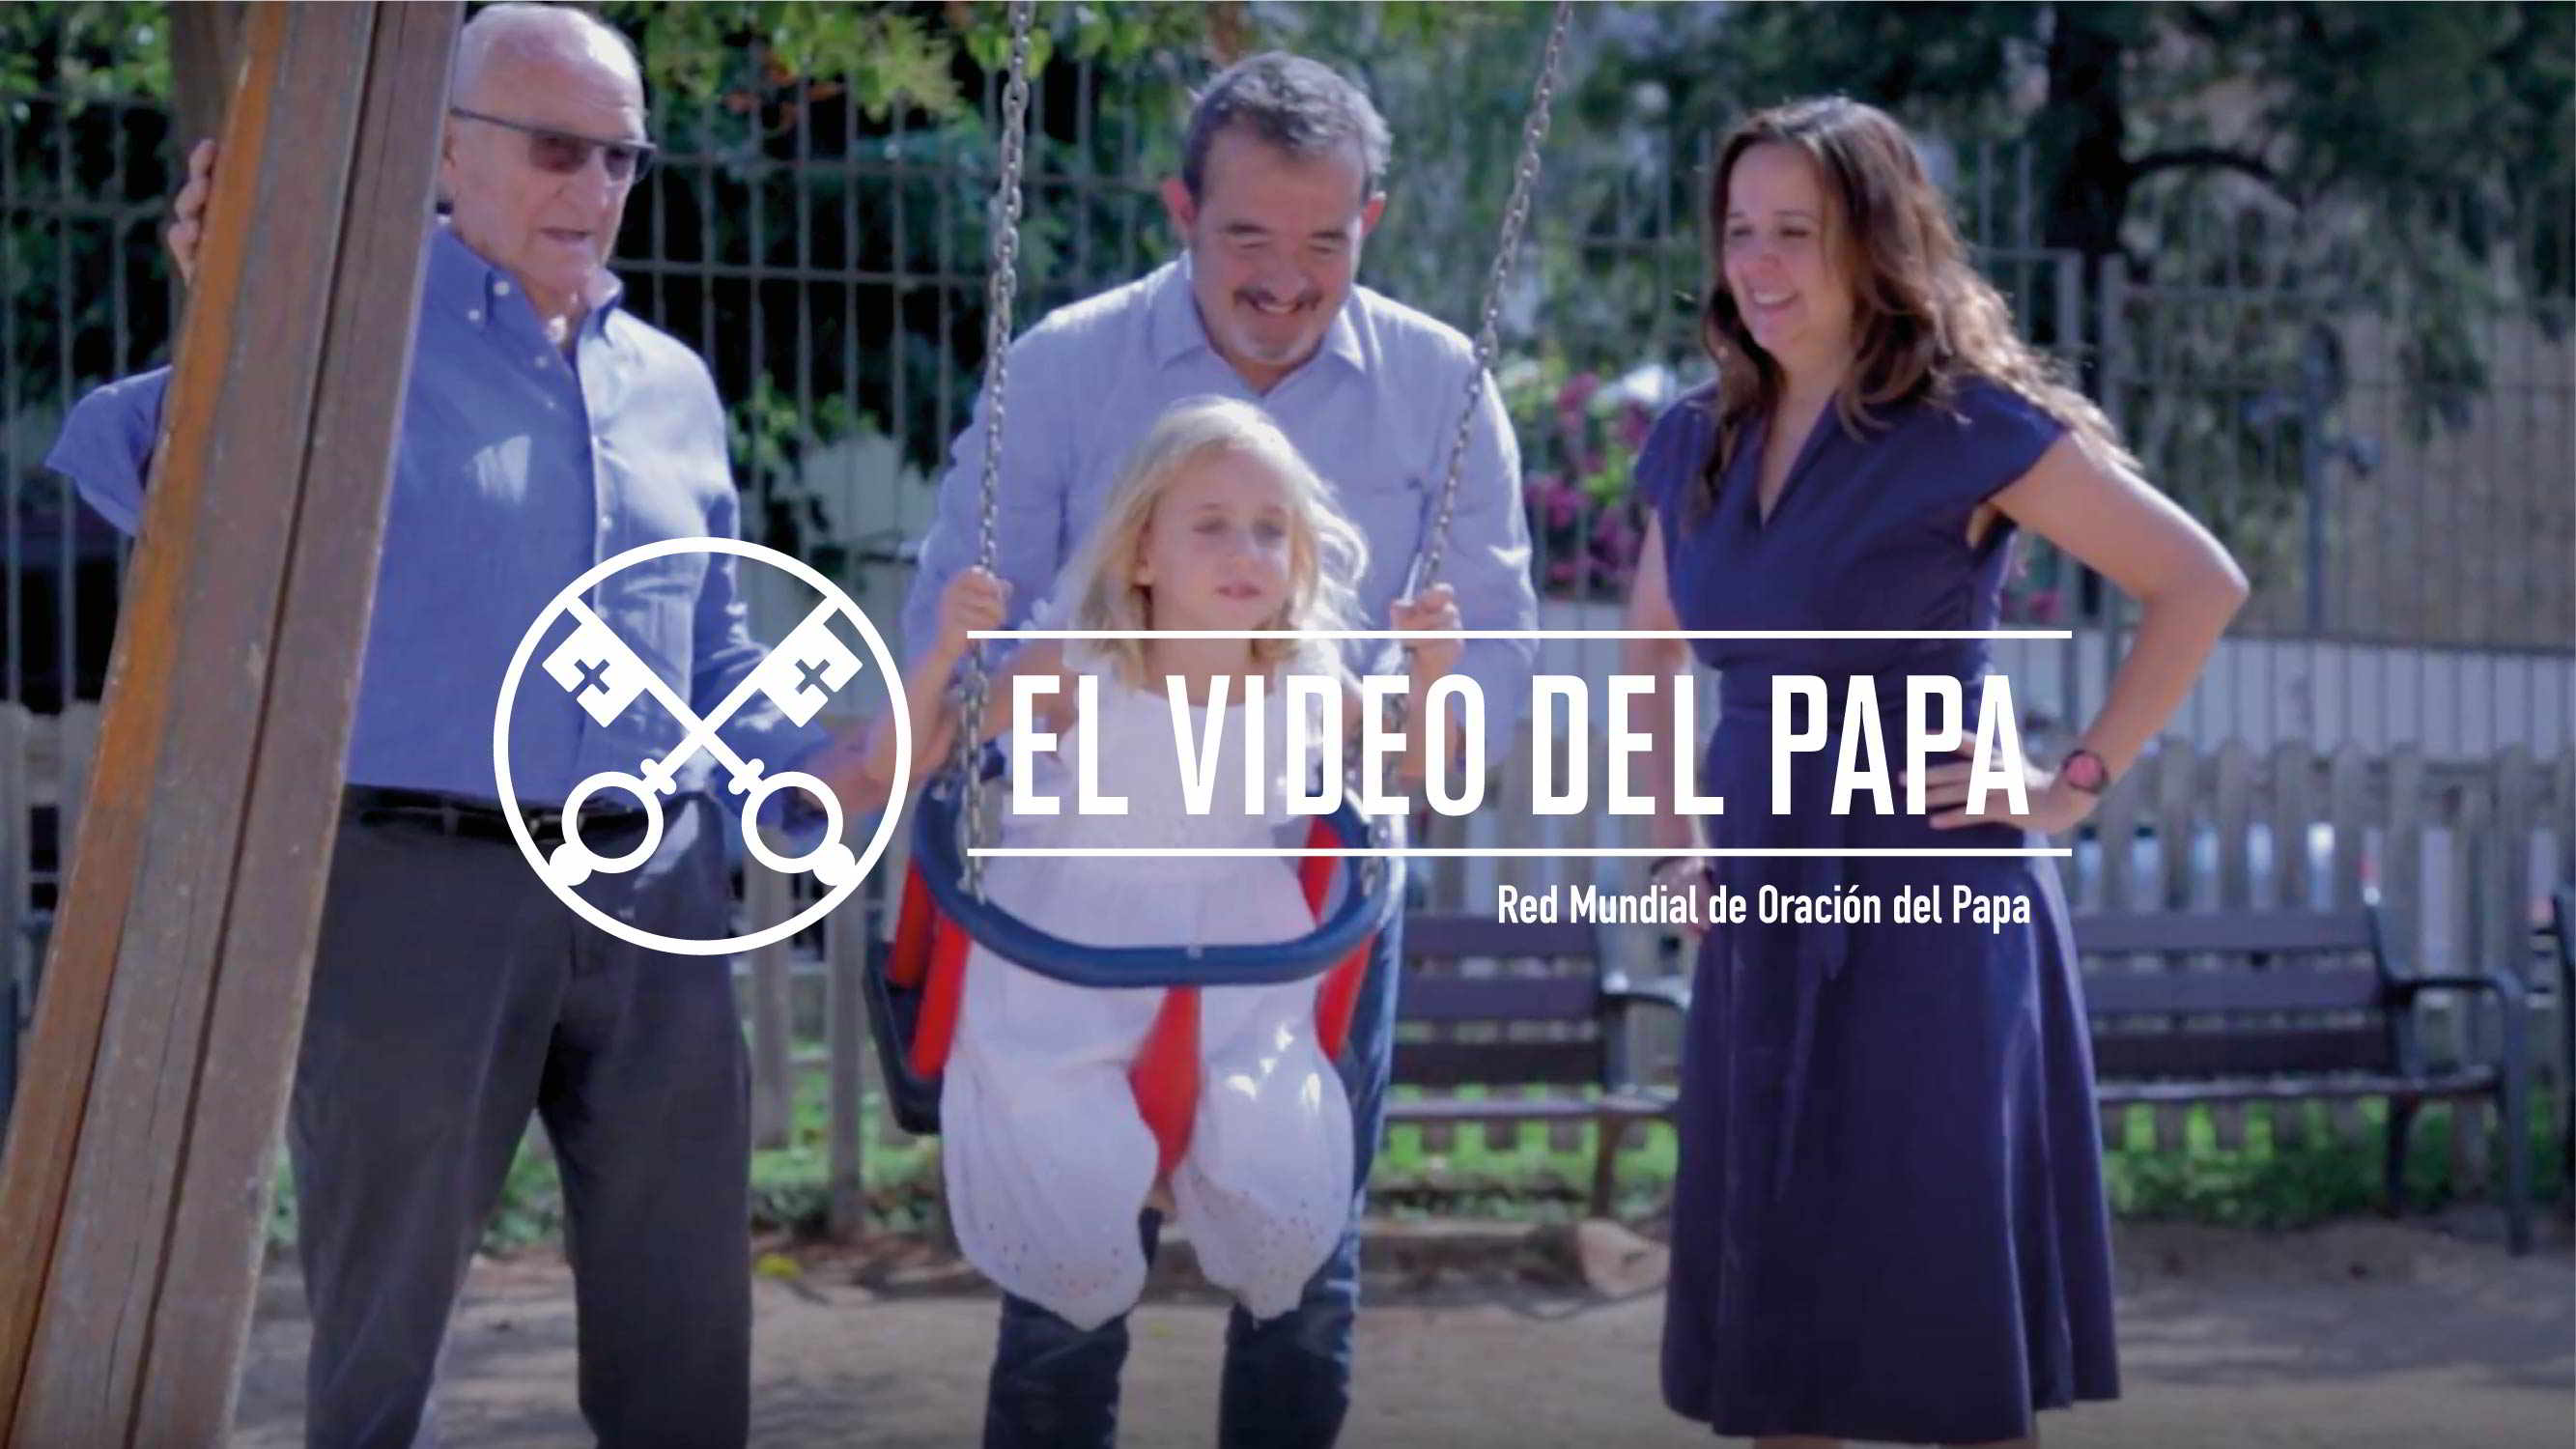 Official-Image-The-Pope-Video-8-2018-The-Treasure-of-Families-2-Spanish